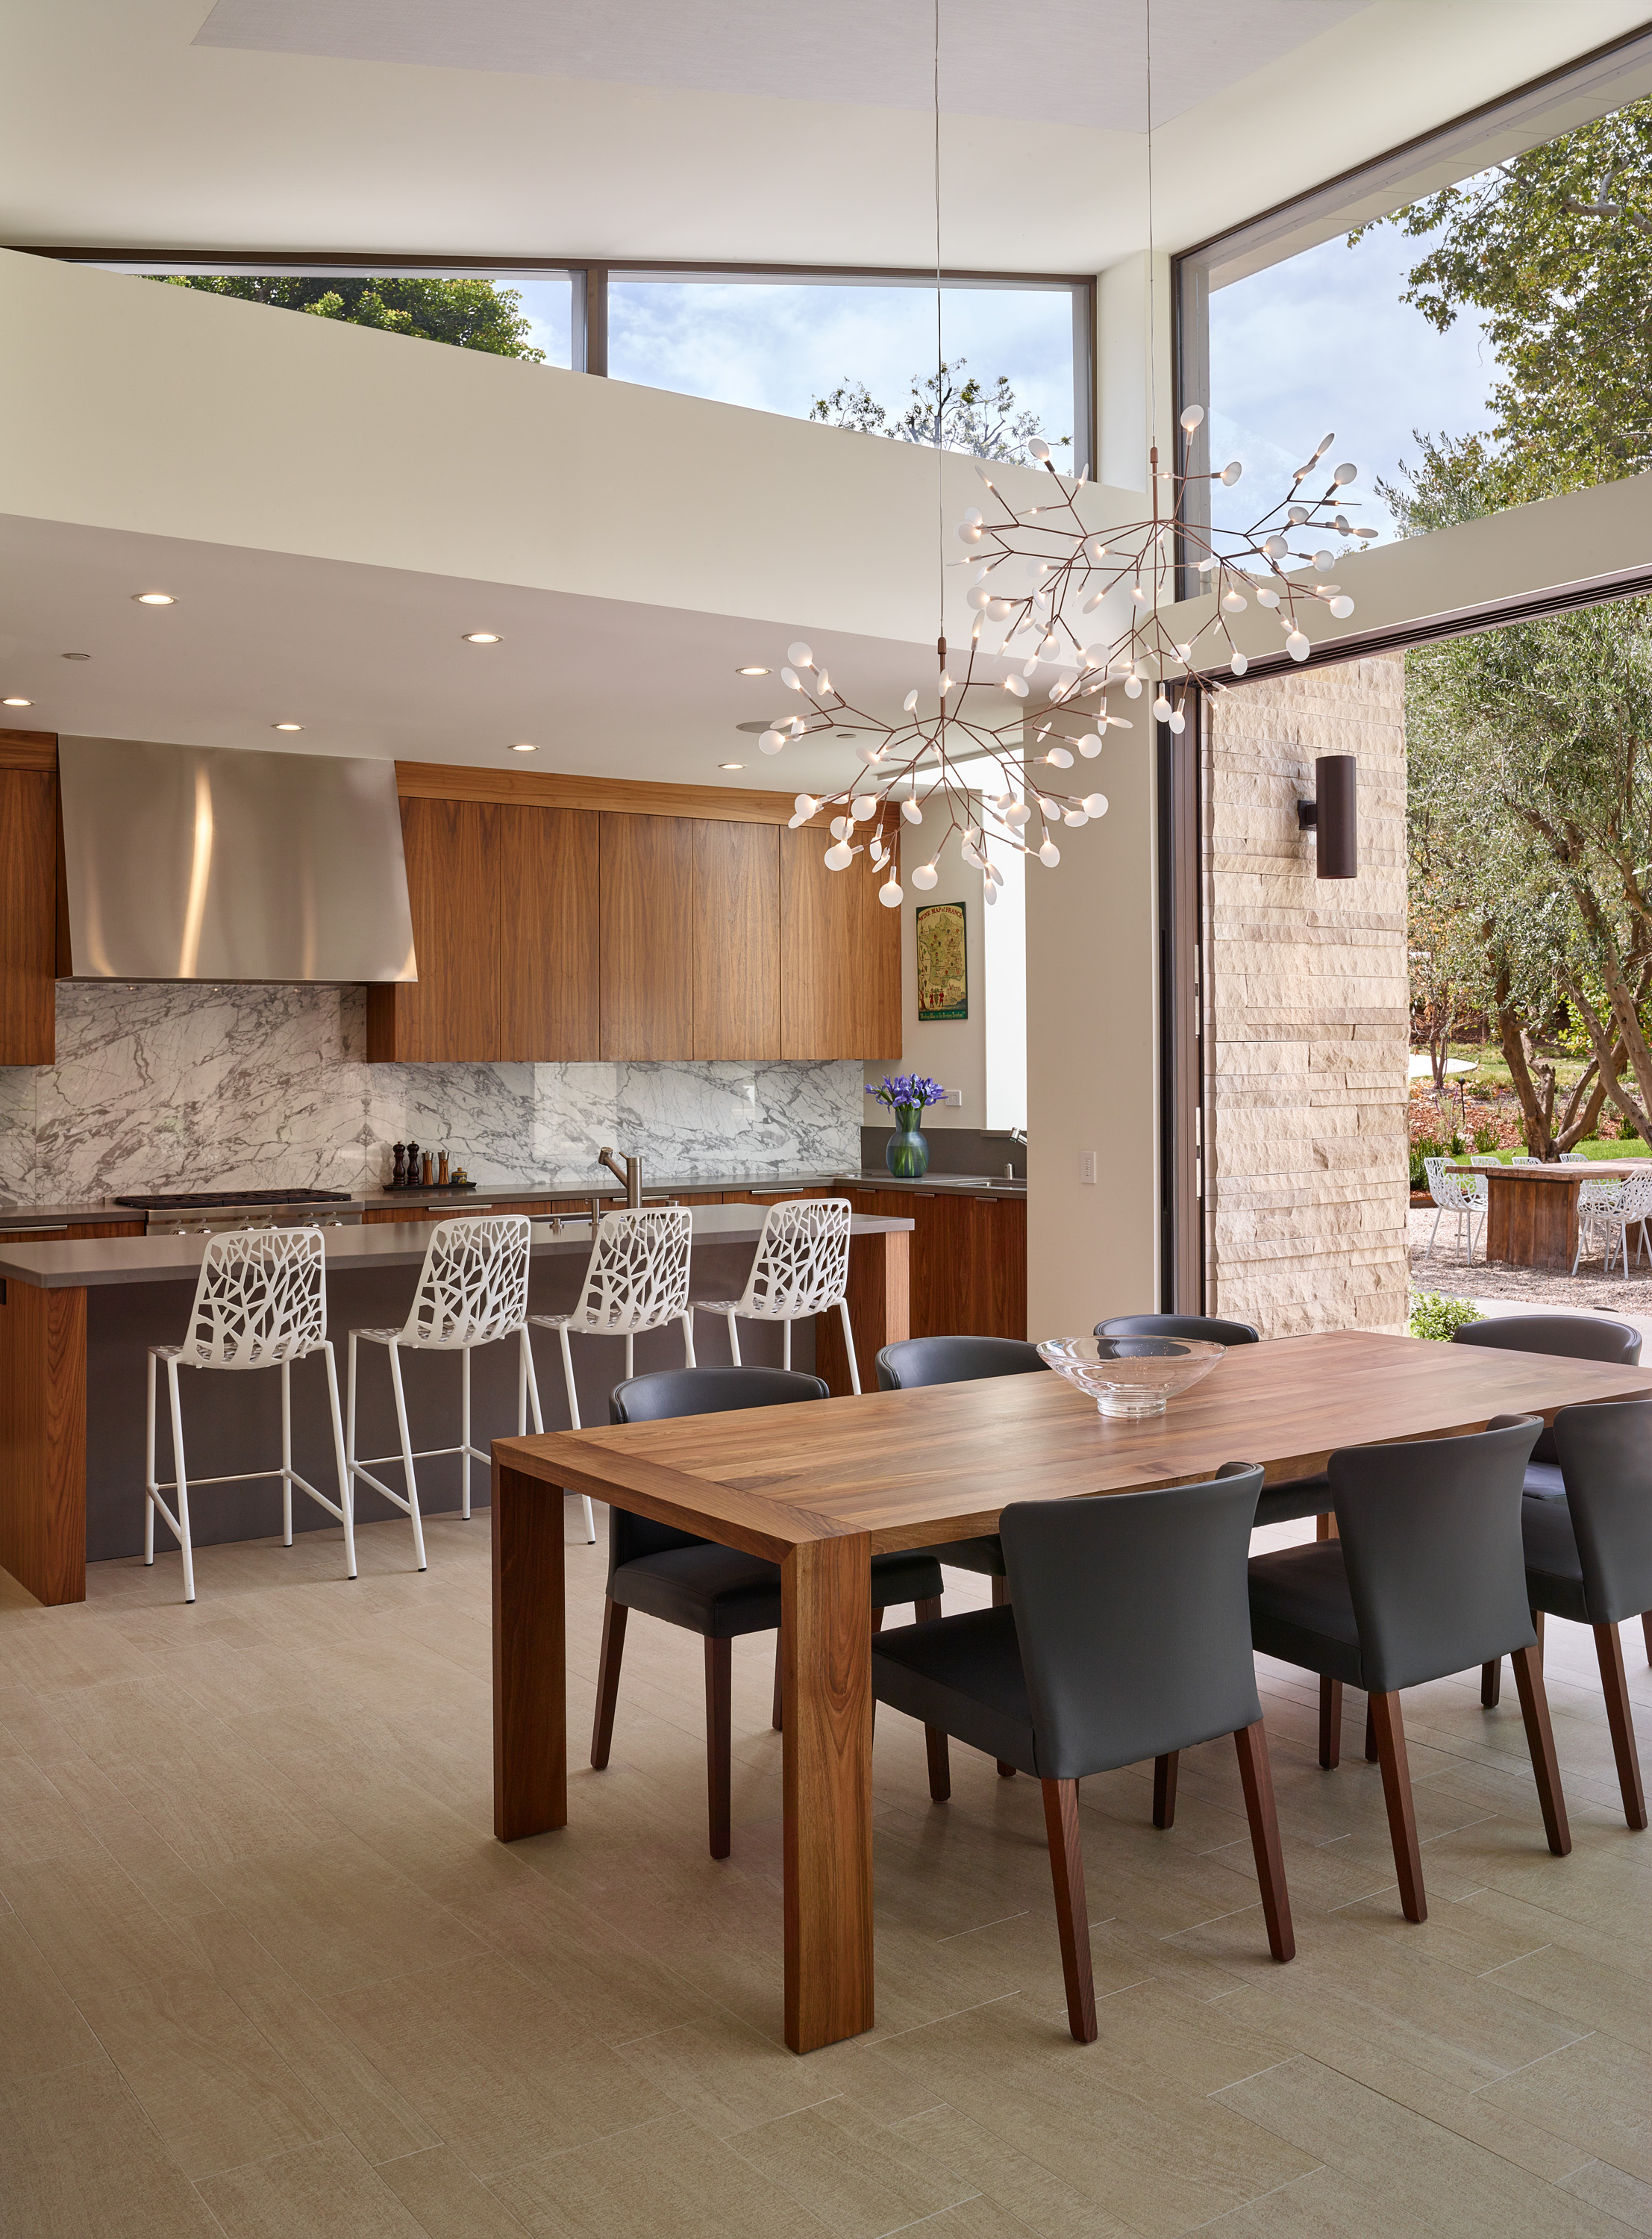 Mandeville house - Dining areas